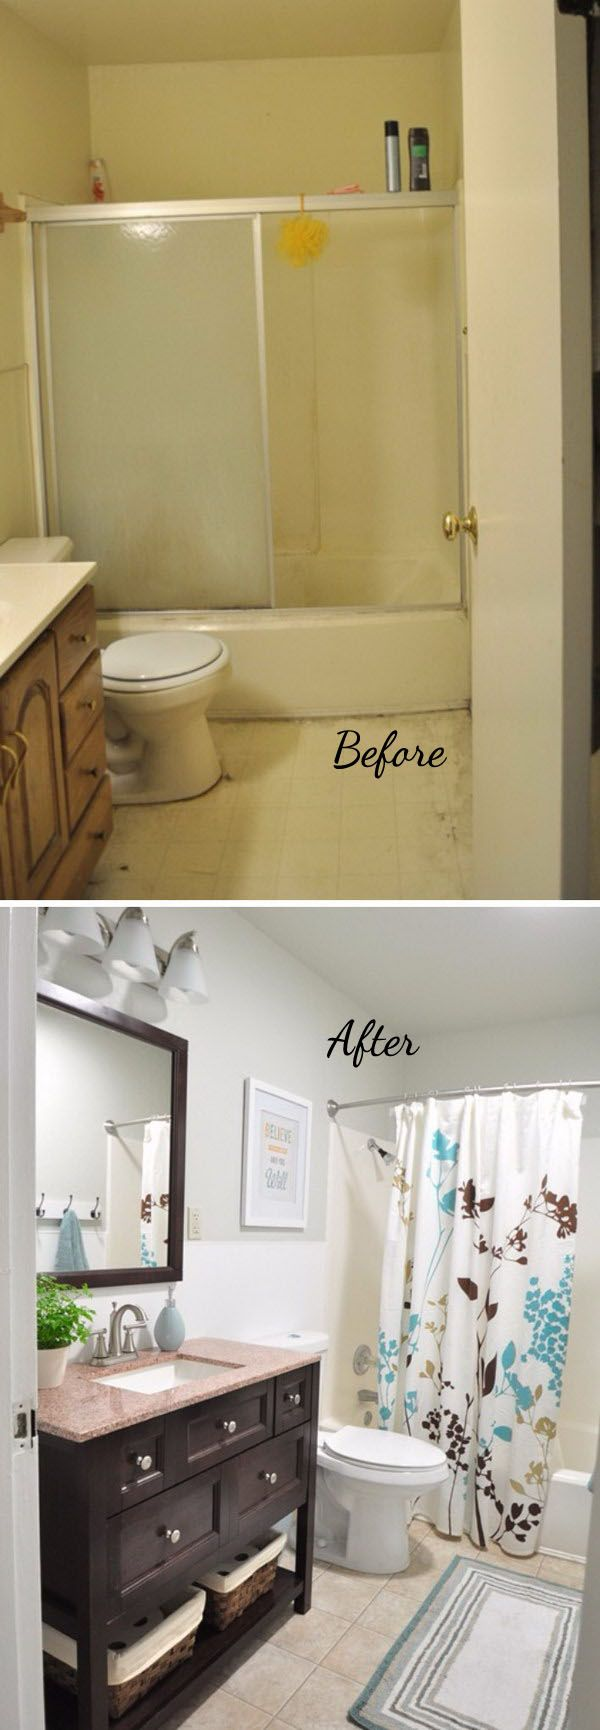 The Immensely Cool Diy Bathroom Remodel Ways You Cannot Find On